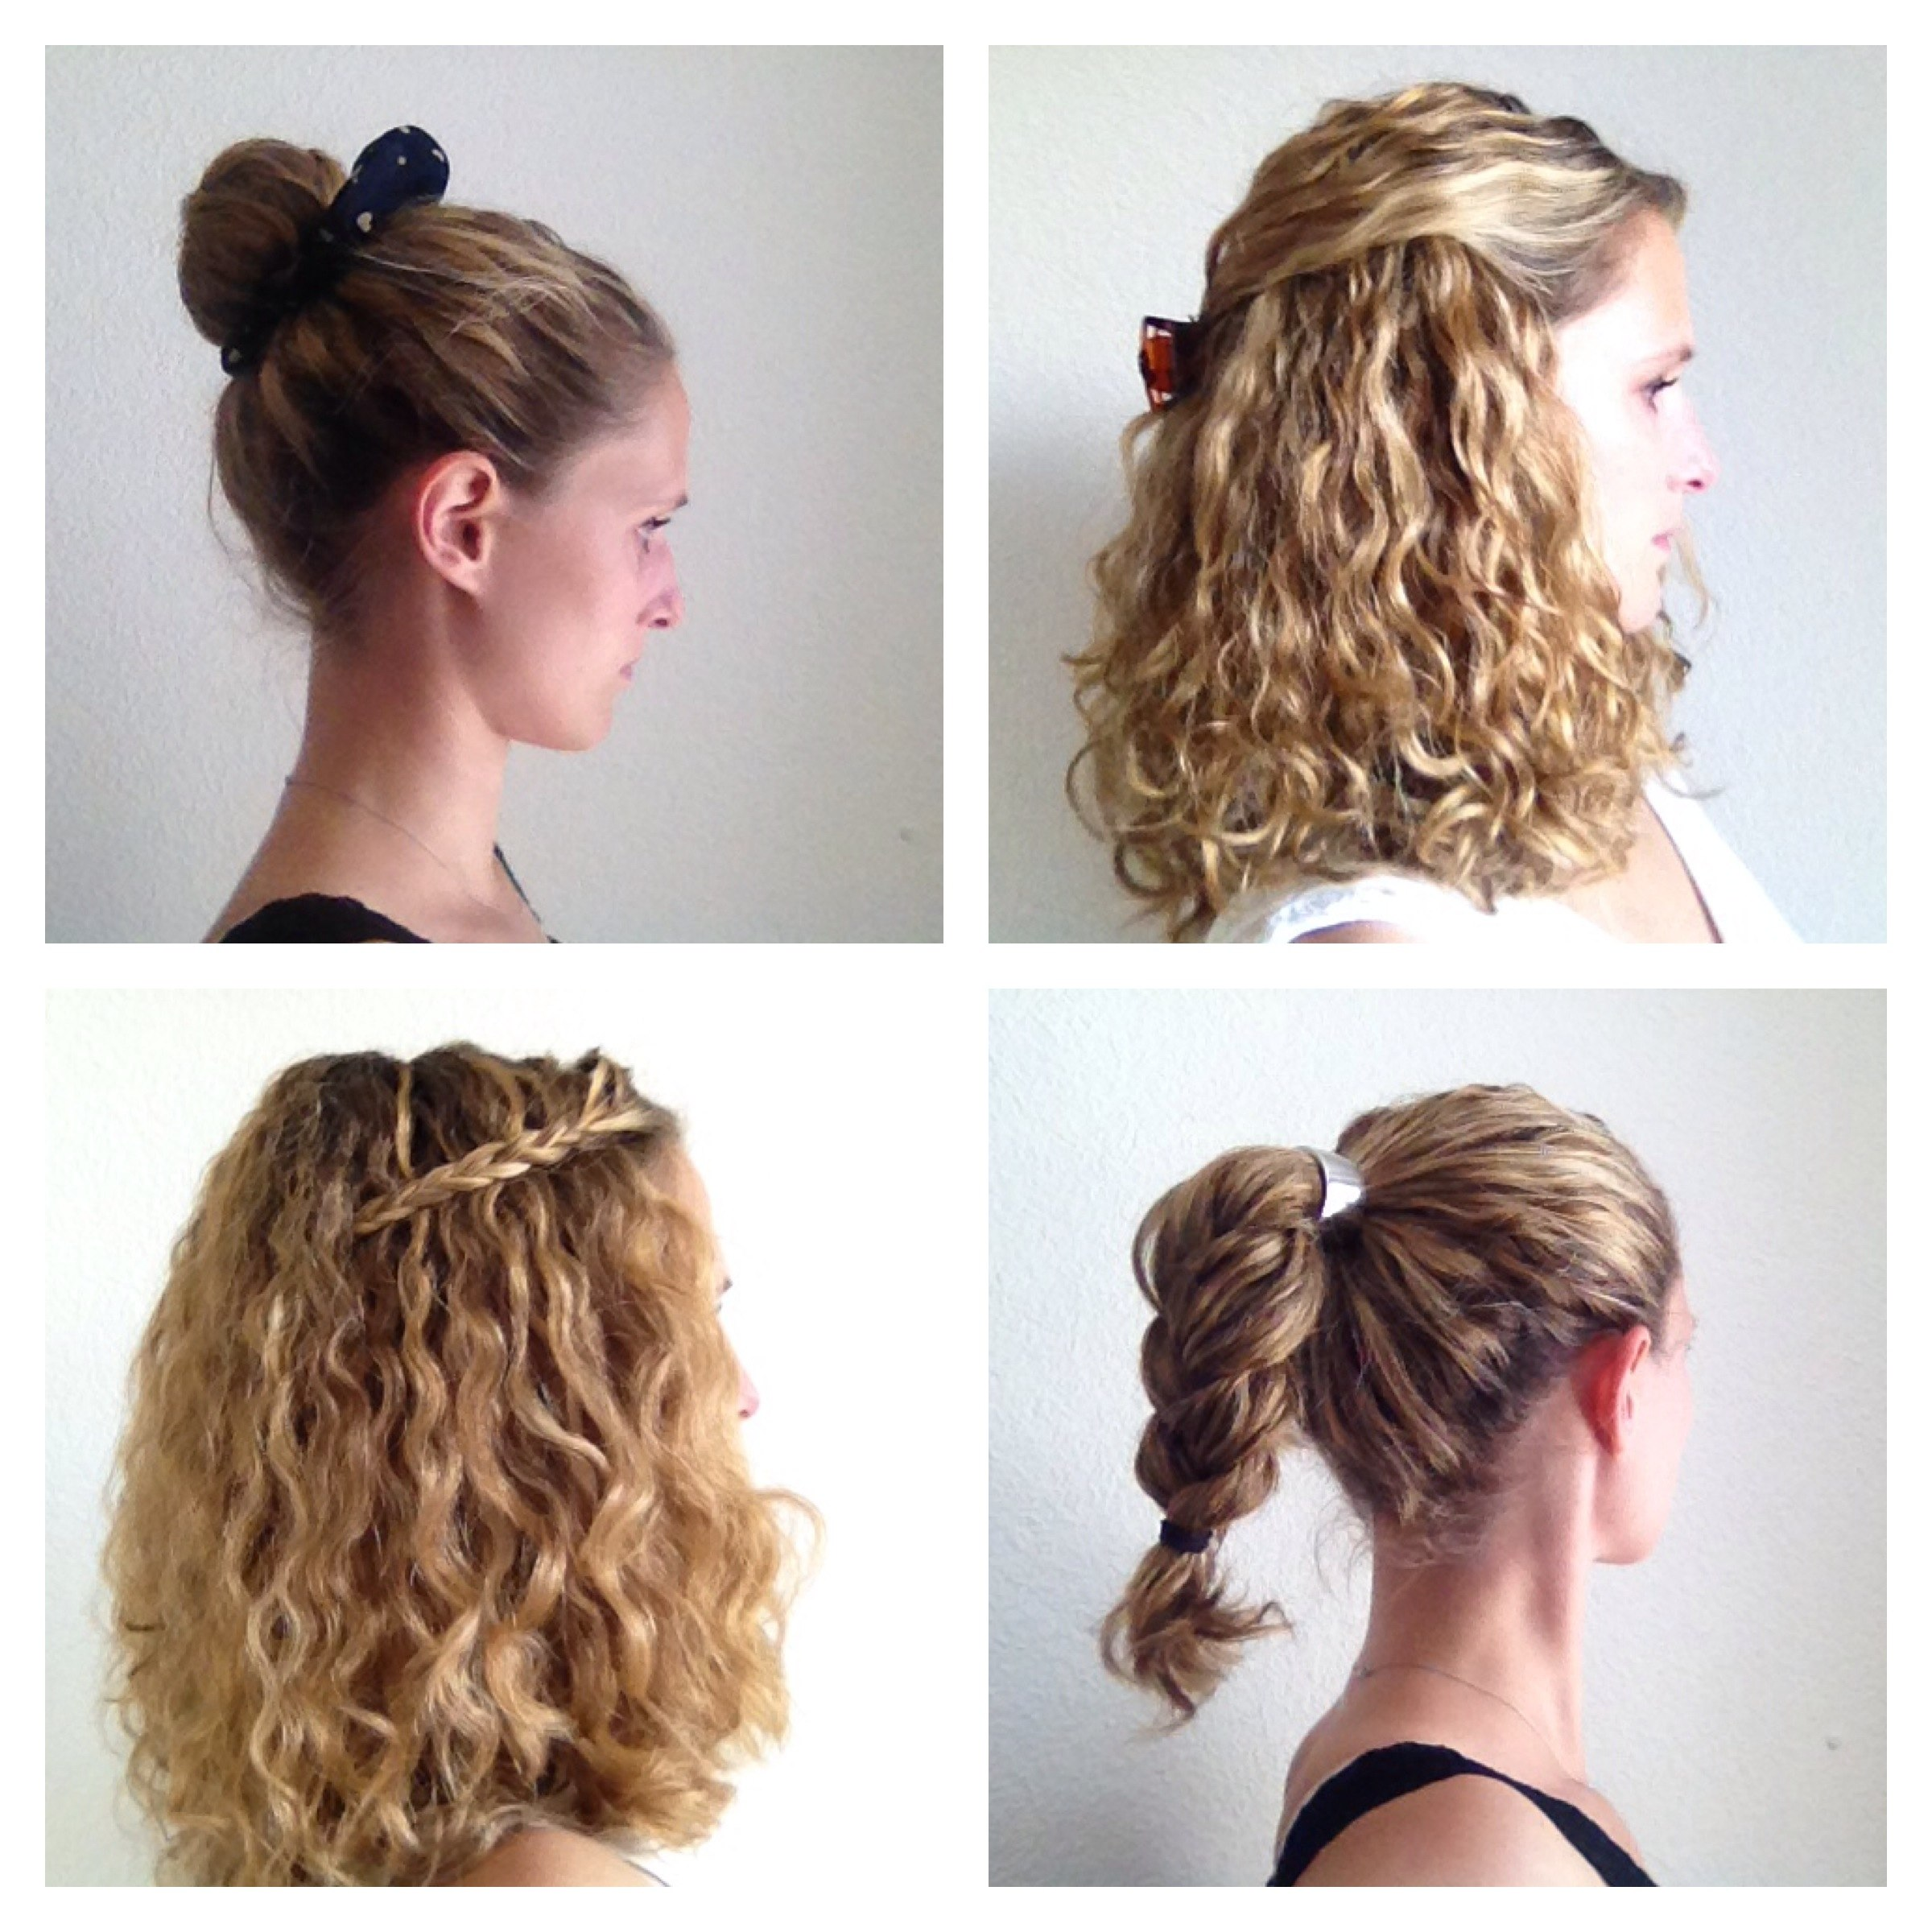 Simple Hairstyle Ideas For Curly Hair : Four styling ideas for curly hair justcurly